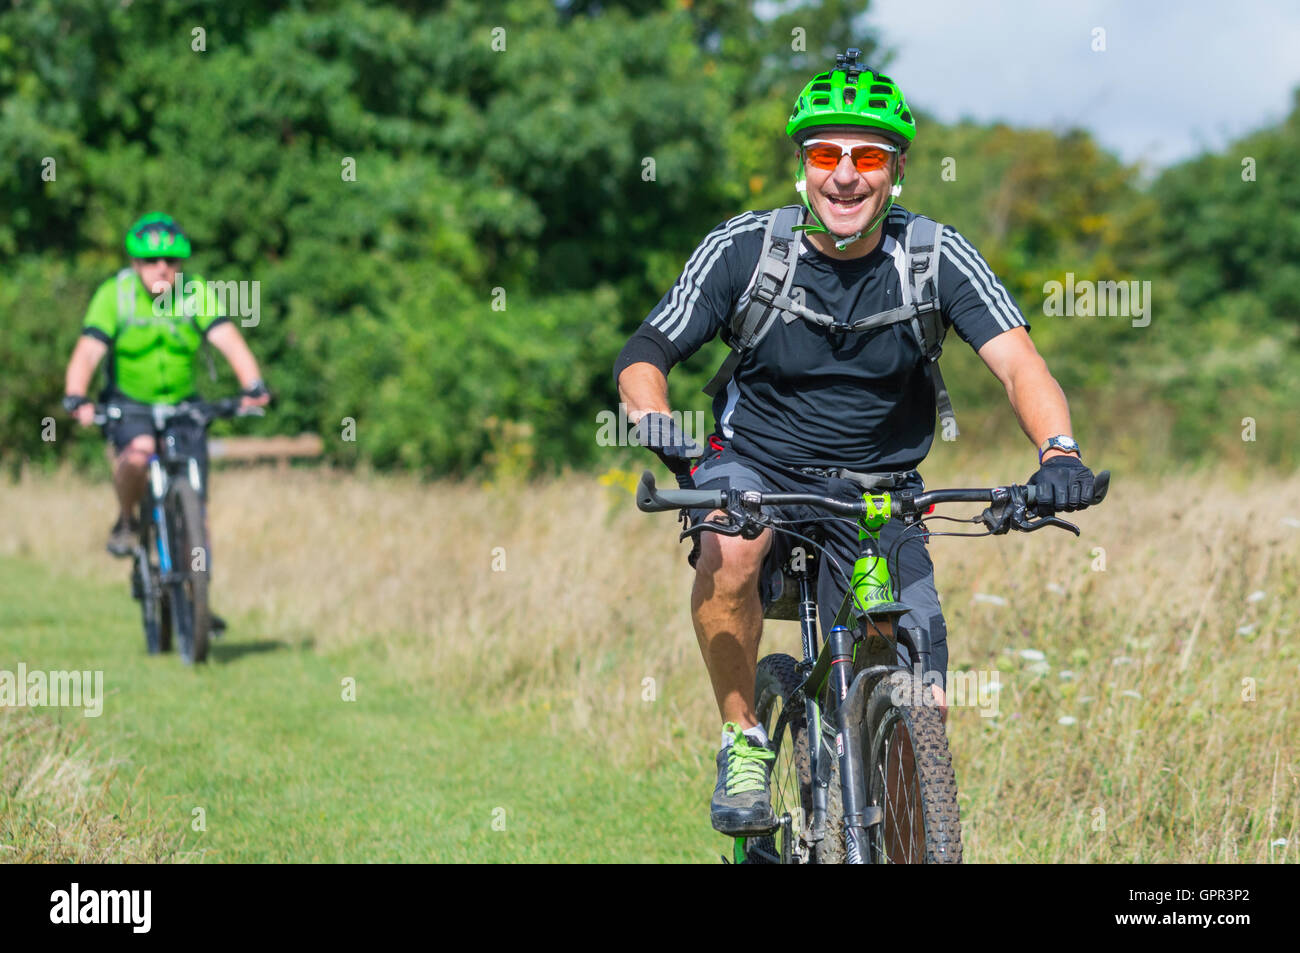 cyclists-wearing-helmets-in-the-countryside-enjoying-the-ride-on-the-GPR3P2.jpg